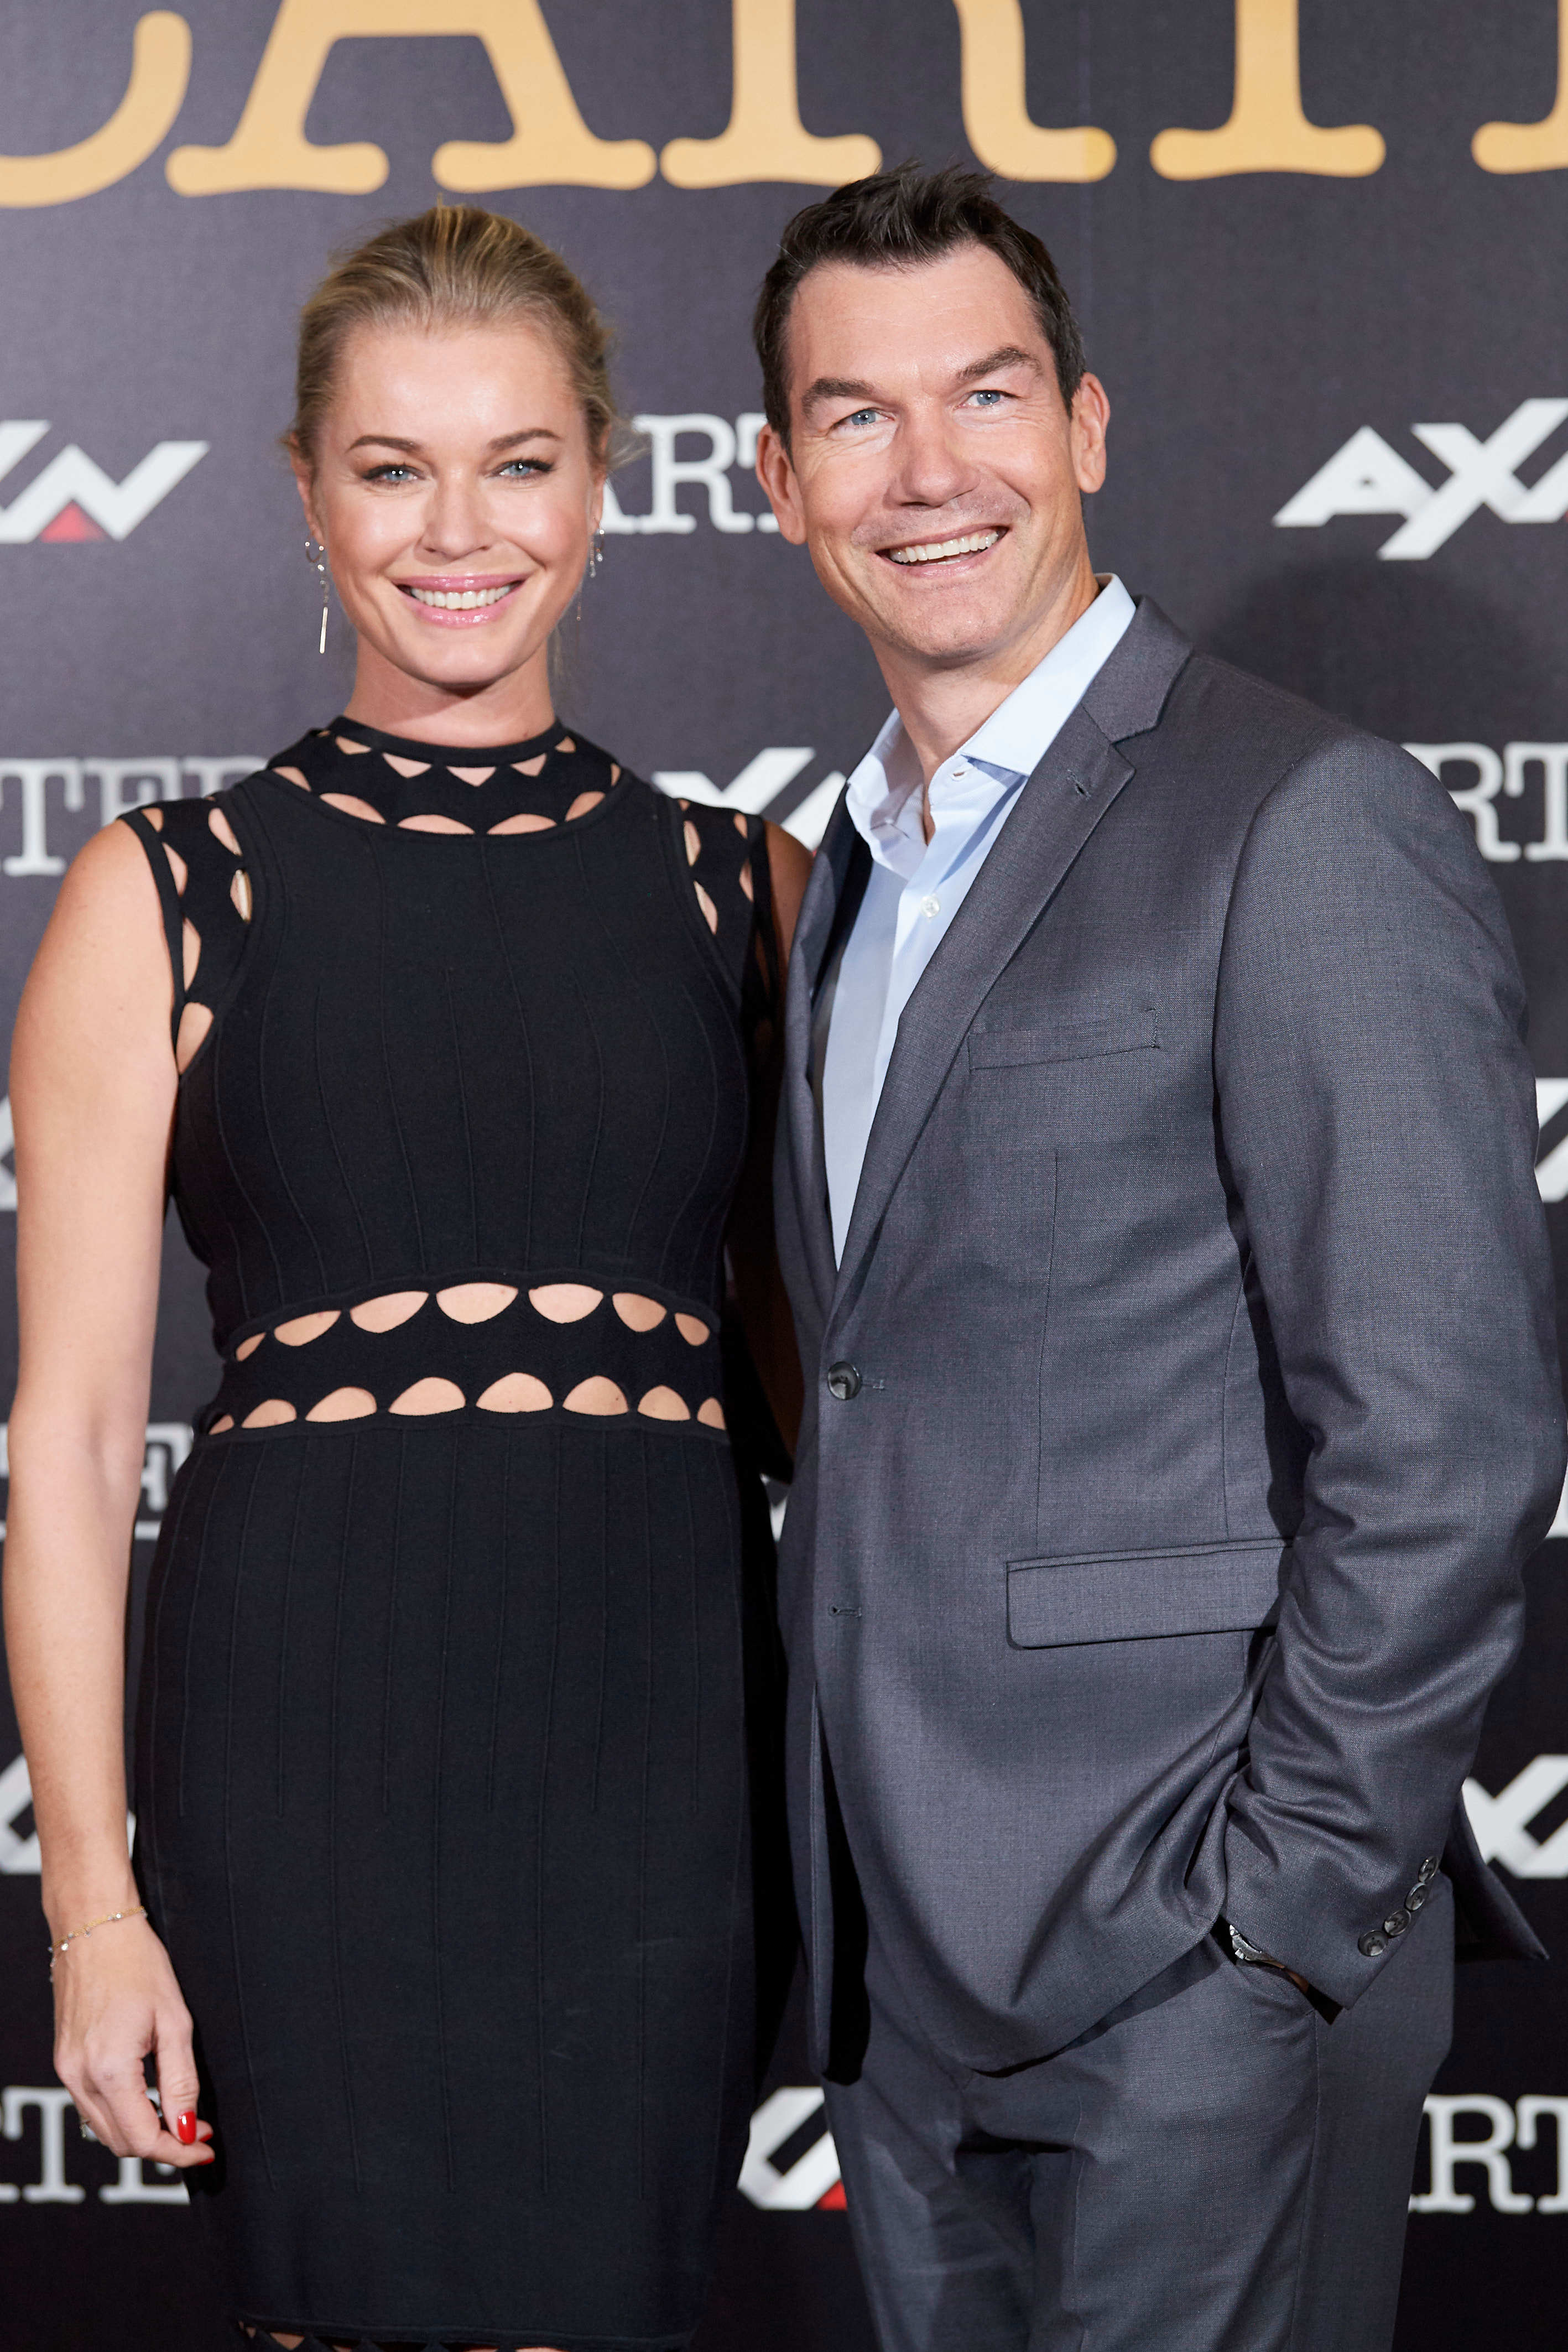 Jerry O Connell Reveals Key To Long Marriage With Wife Rebecca Romijn